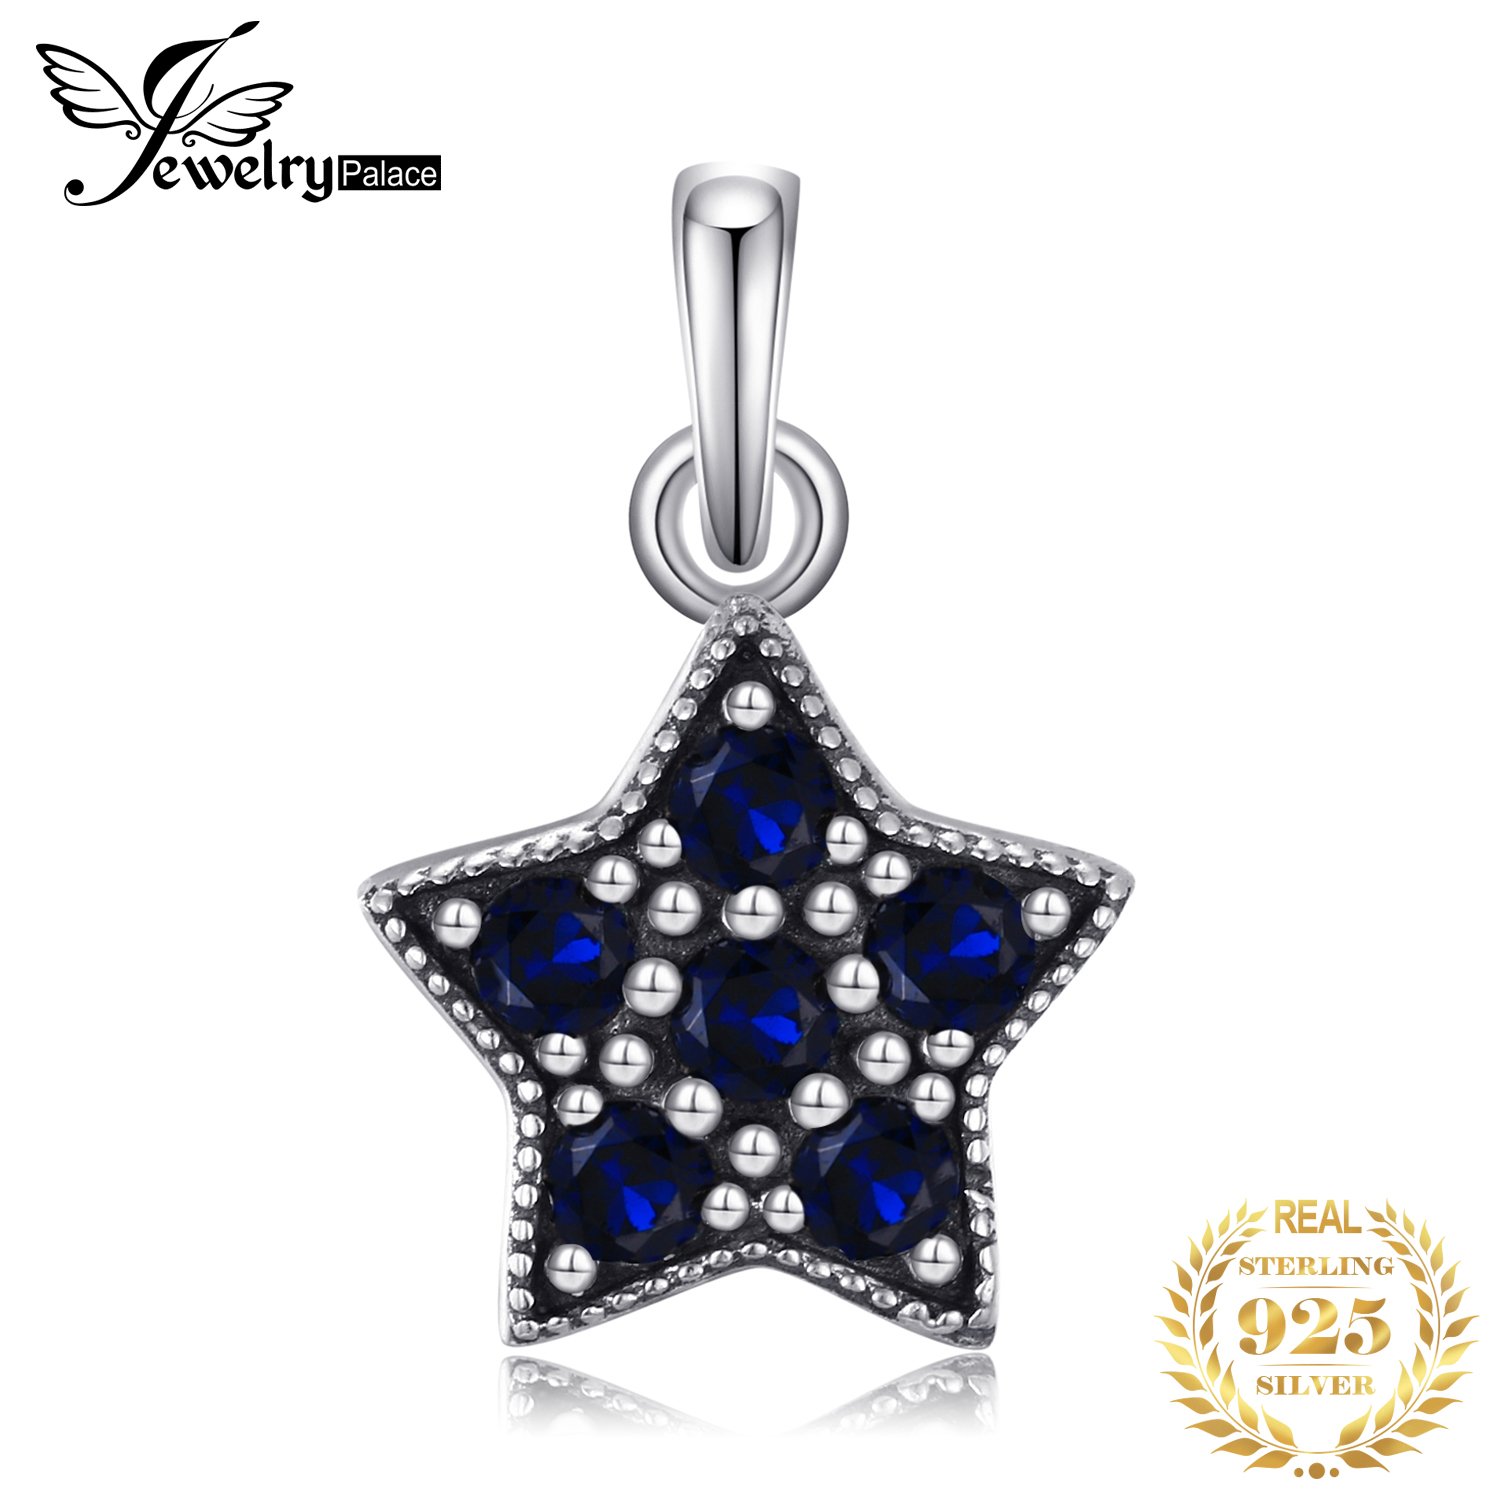 Jewelrypalace 925 Sterling Silver Glitter in Ocean Star Blue Murano Glass Charm Bracelets Gifts For Her Fashion Jewelry Present